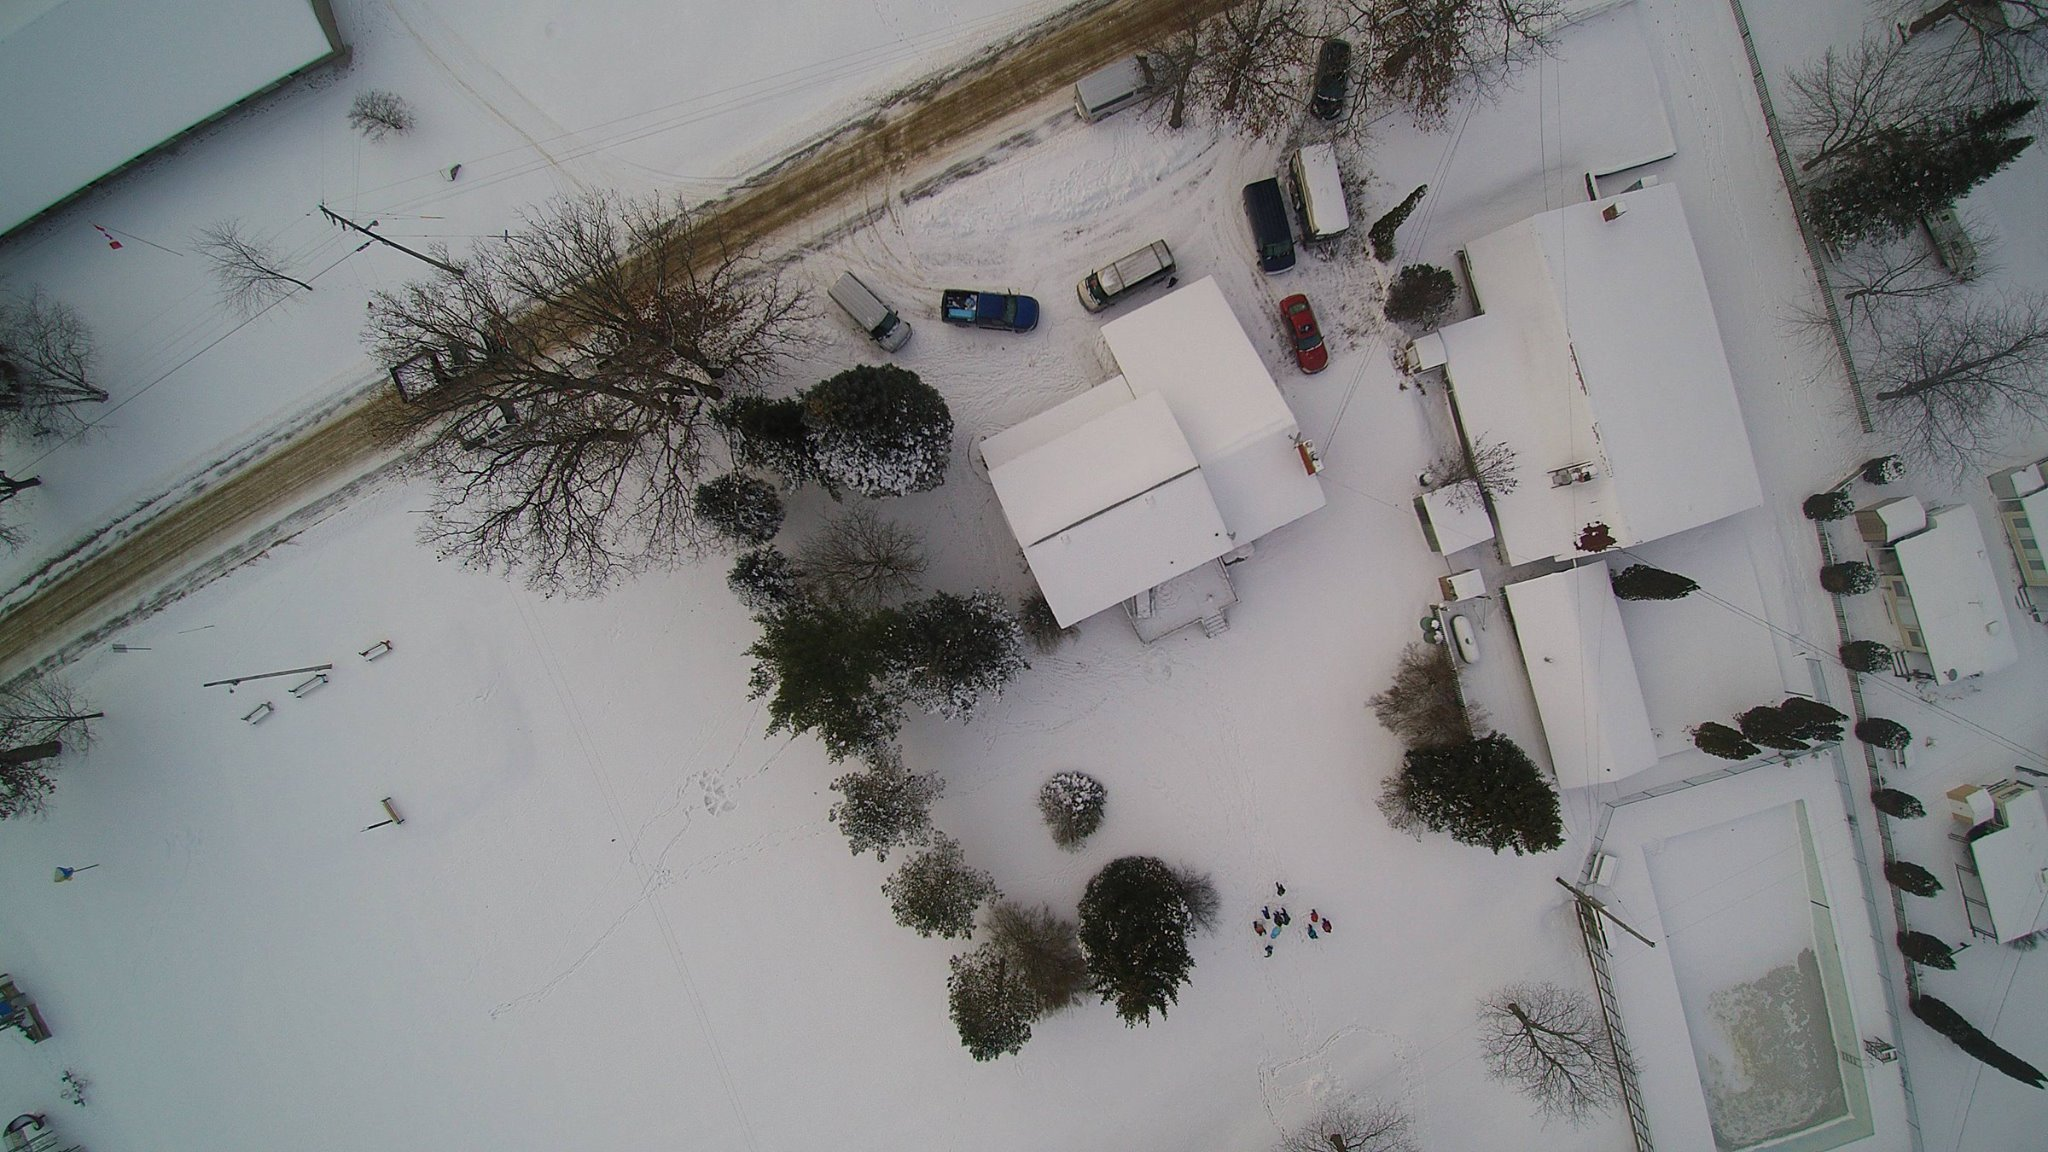 A friend brought his drone to our Christmas party and took this picture of the house we are staying in.  You can see the park's snack shop to the right of the house, the pool, and even a couple of the trailers.  Pretty neat, eh?